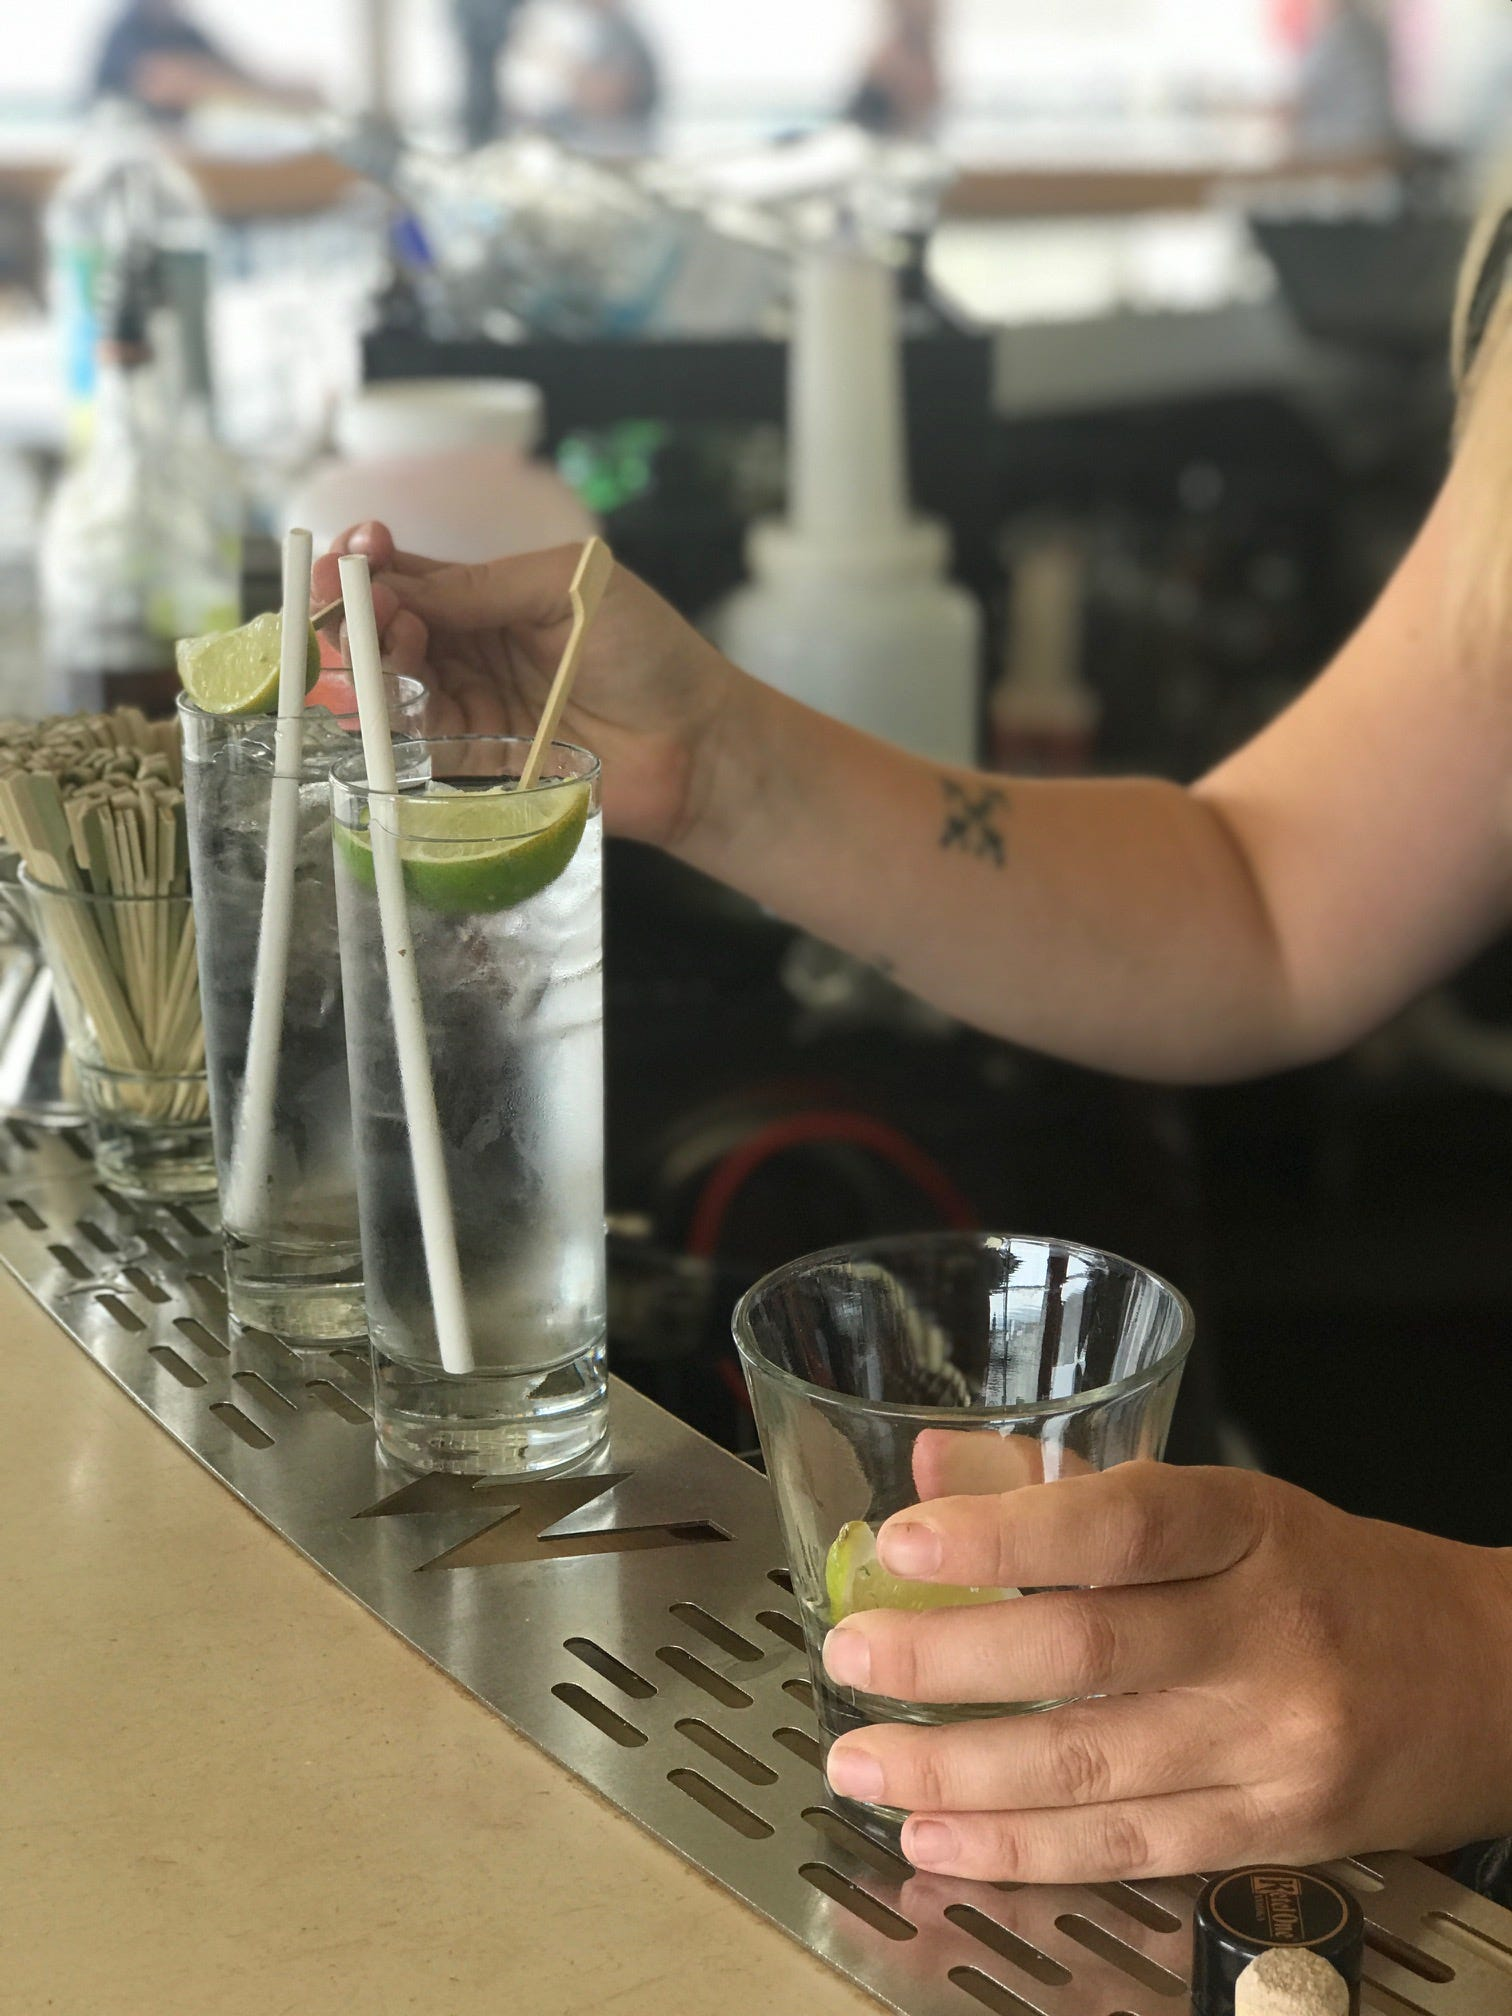 Marriott to eliminate plastic straws from all hotels   USA Today